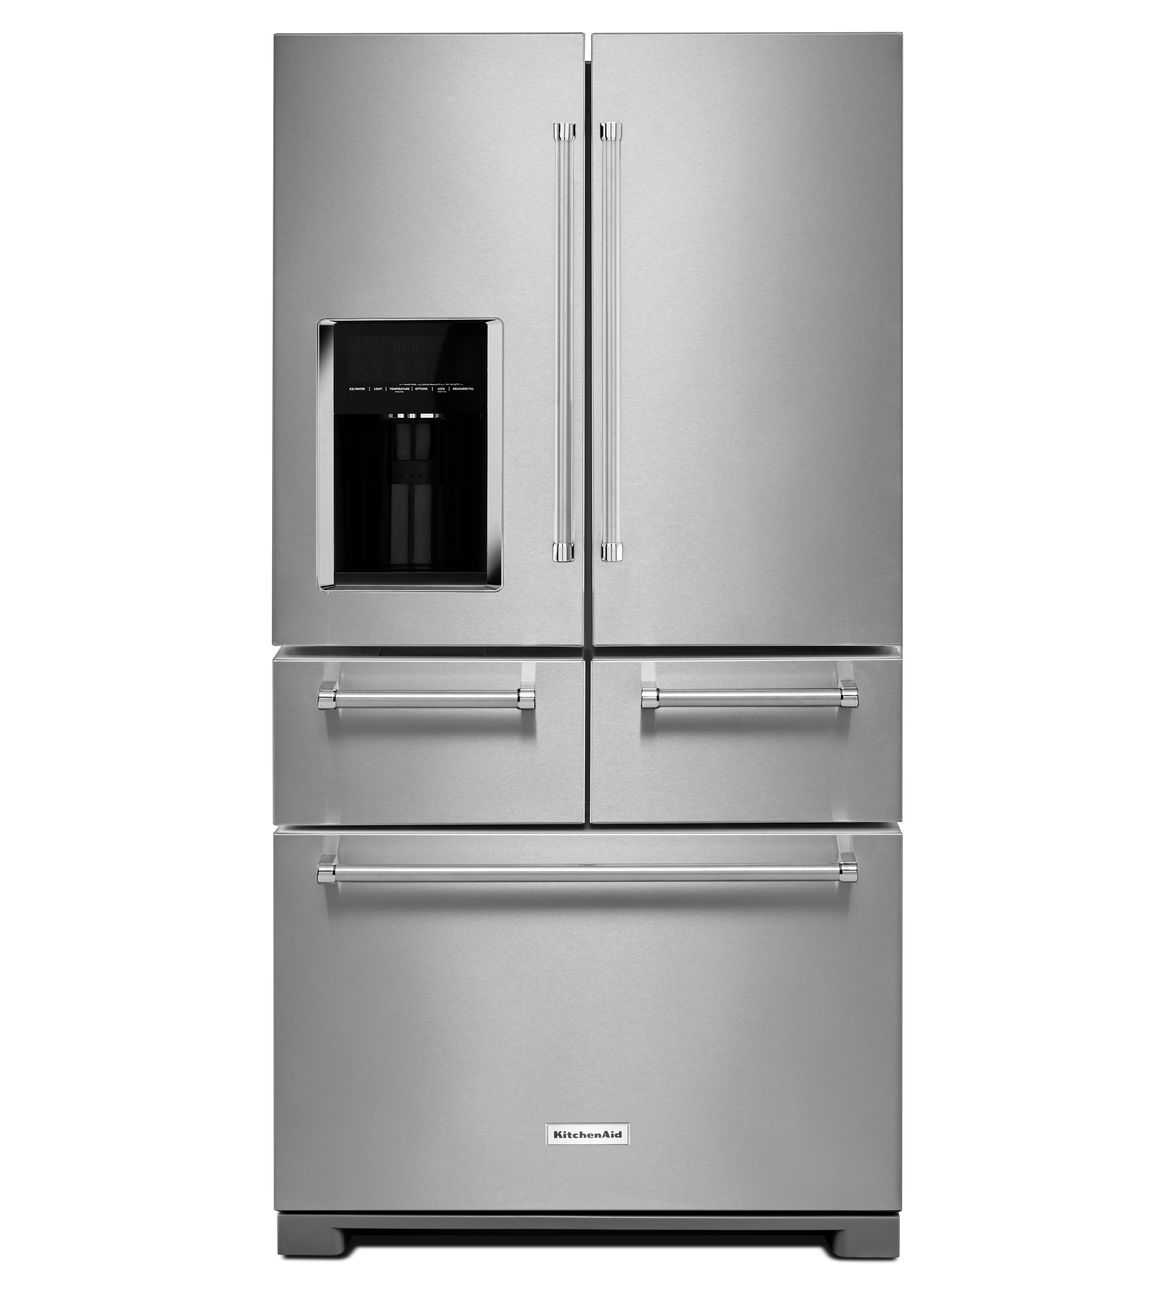 KitchenAid Multi-Door Refrigerator